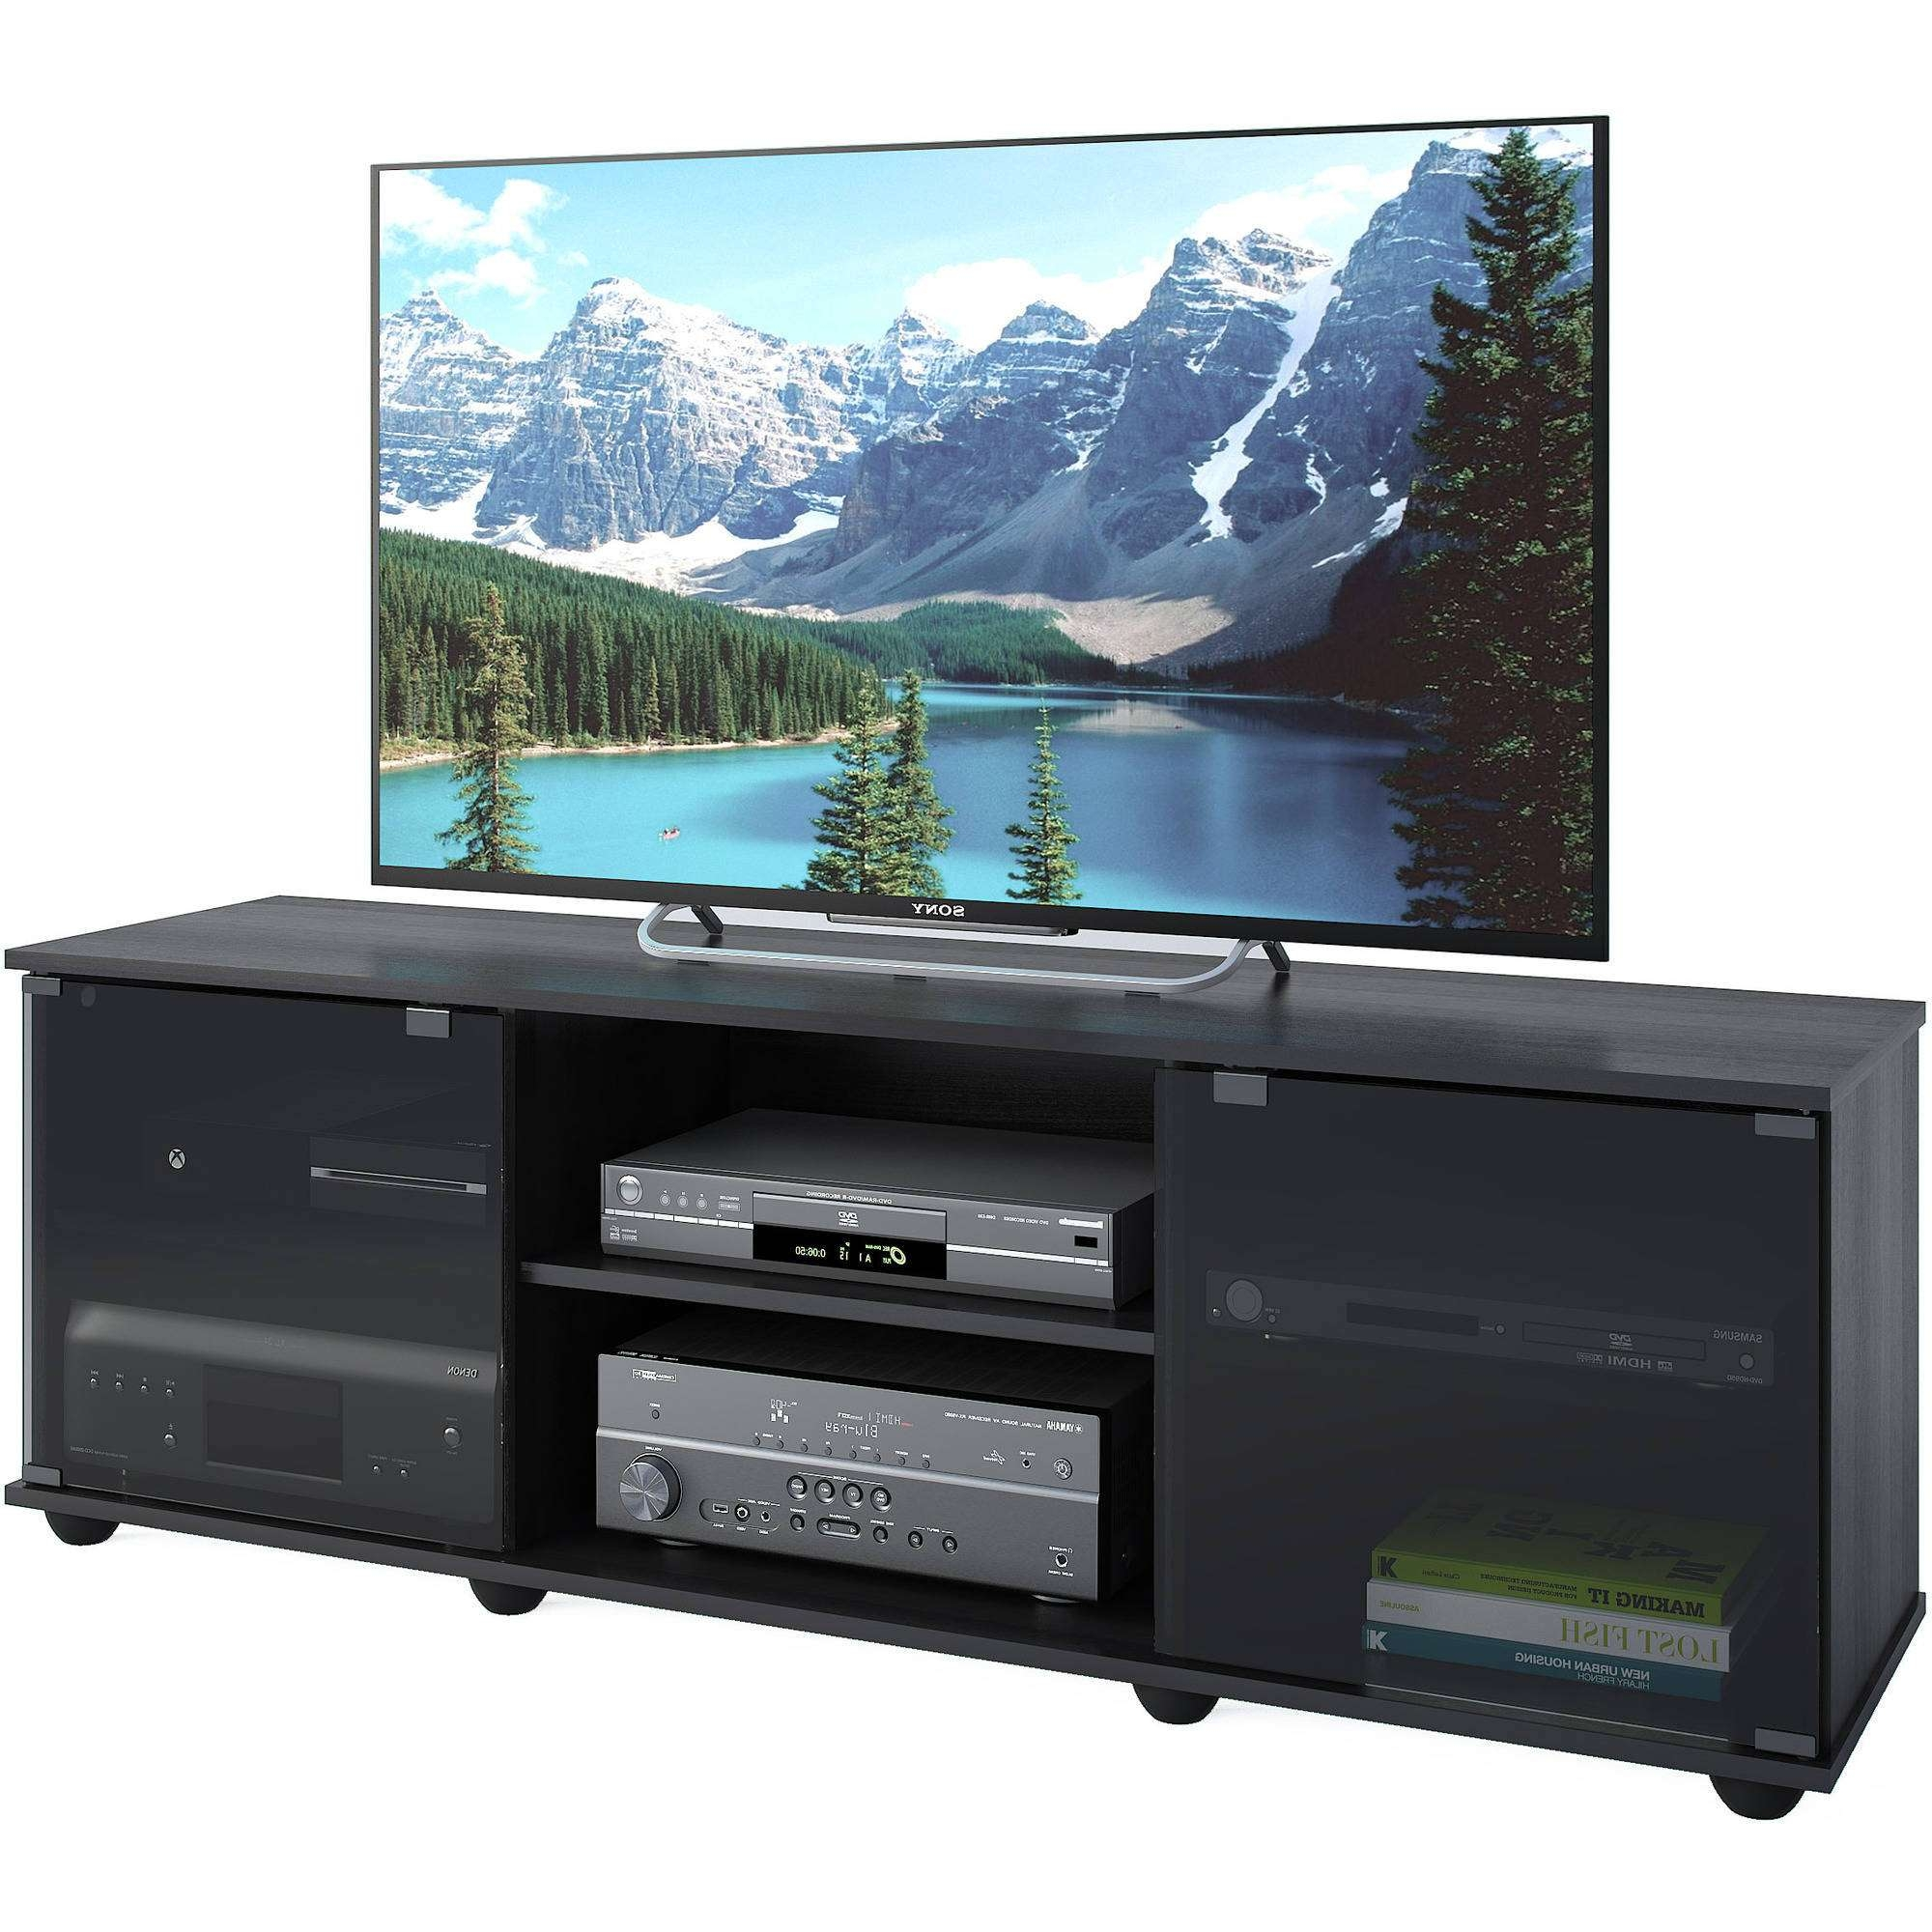 "Corliving Fiji Tv Bench For Tvs Up To 64"", Ravenwood Black In Sonax Tv Stands (View 4 of 15)"